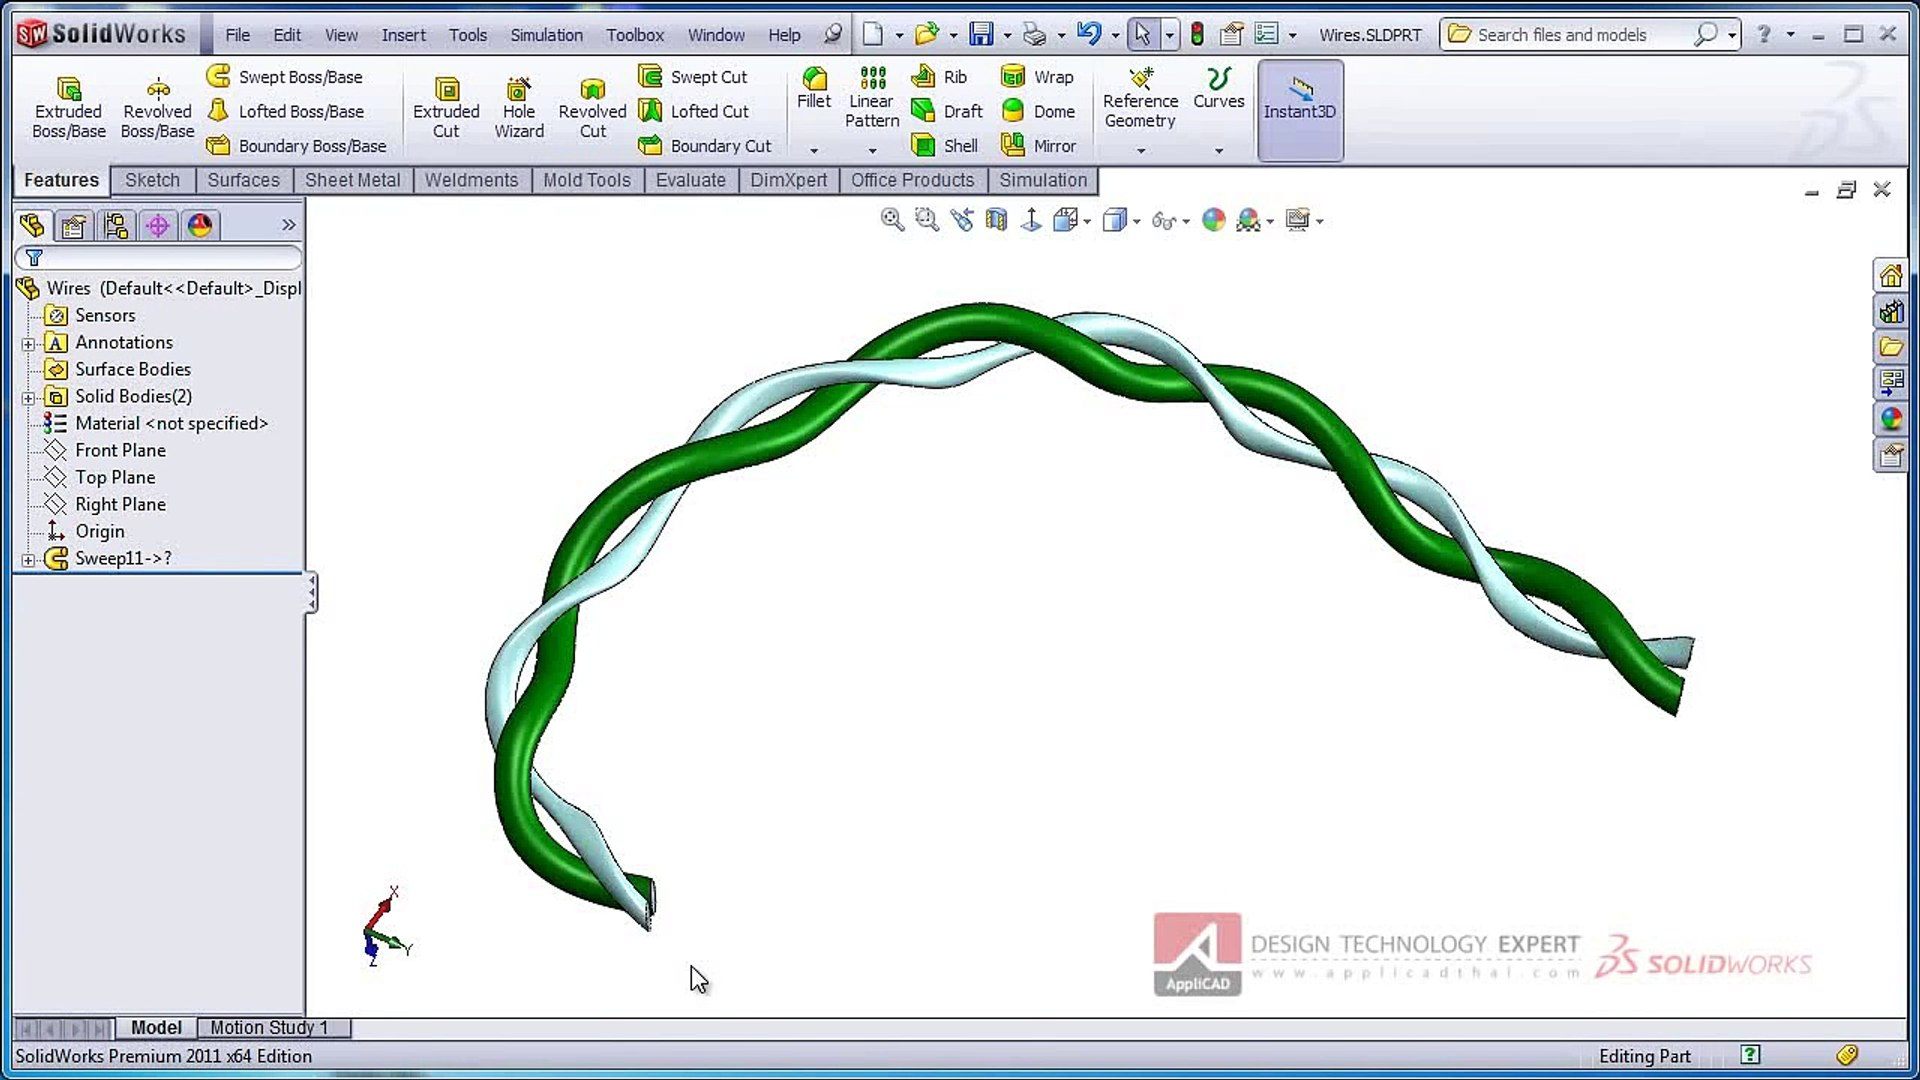 SolidWorks Twist Along Path | SolidWorks Swept Boss/Base | SolidWorks Swept  Boss Base